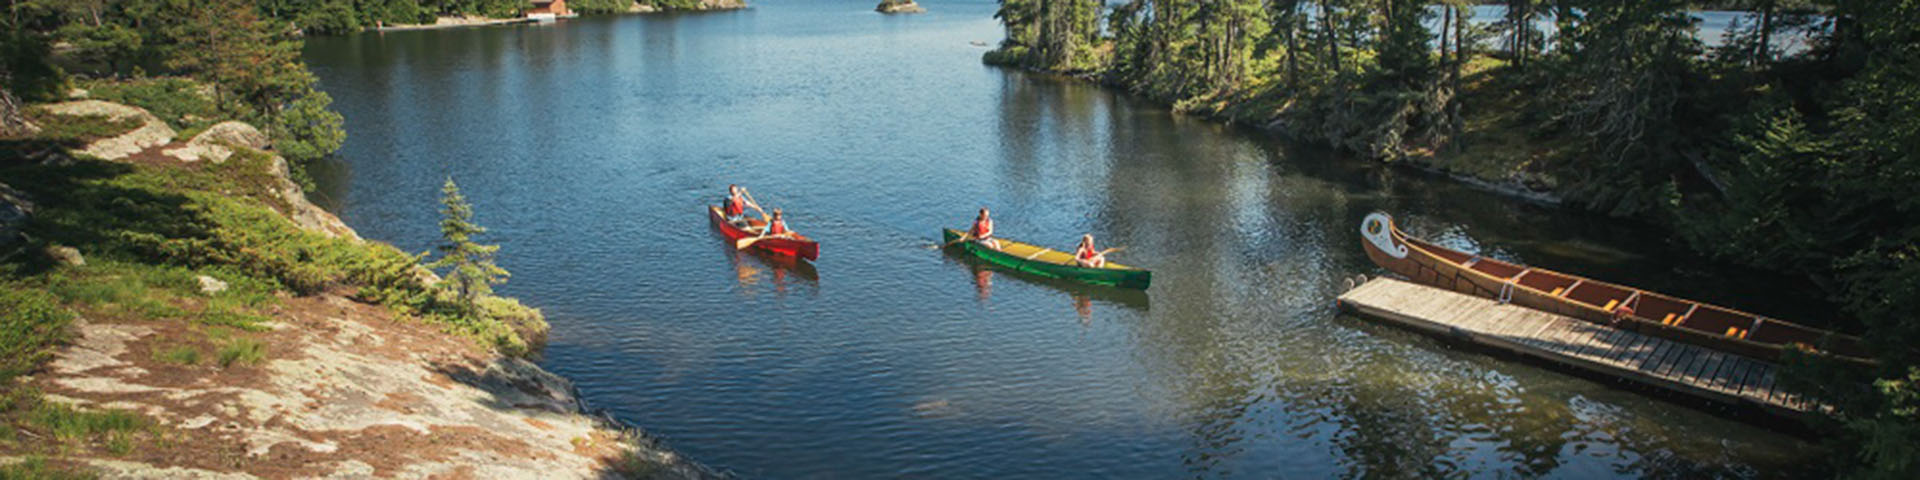 Quetico Eco-Lodge by Voyageur Wilderness Programme - Image 310